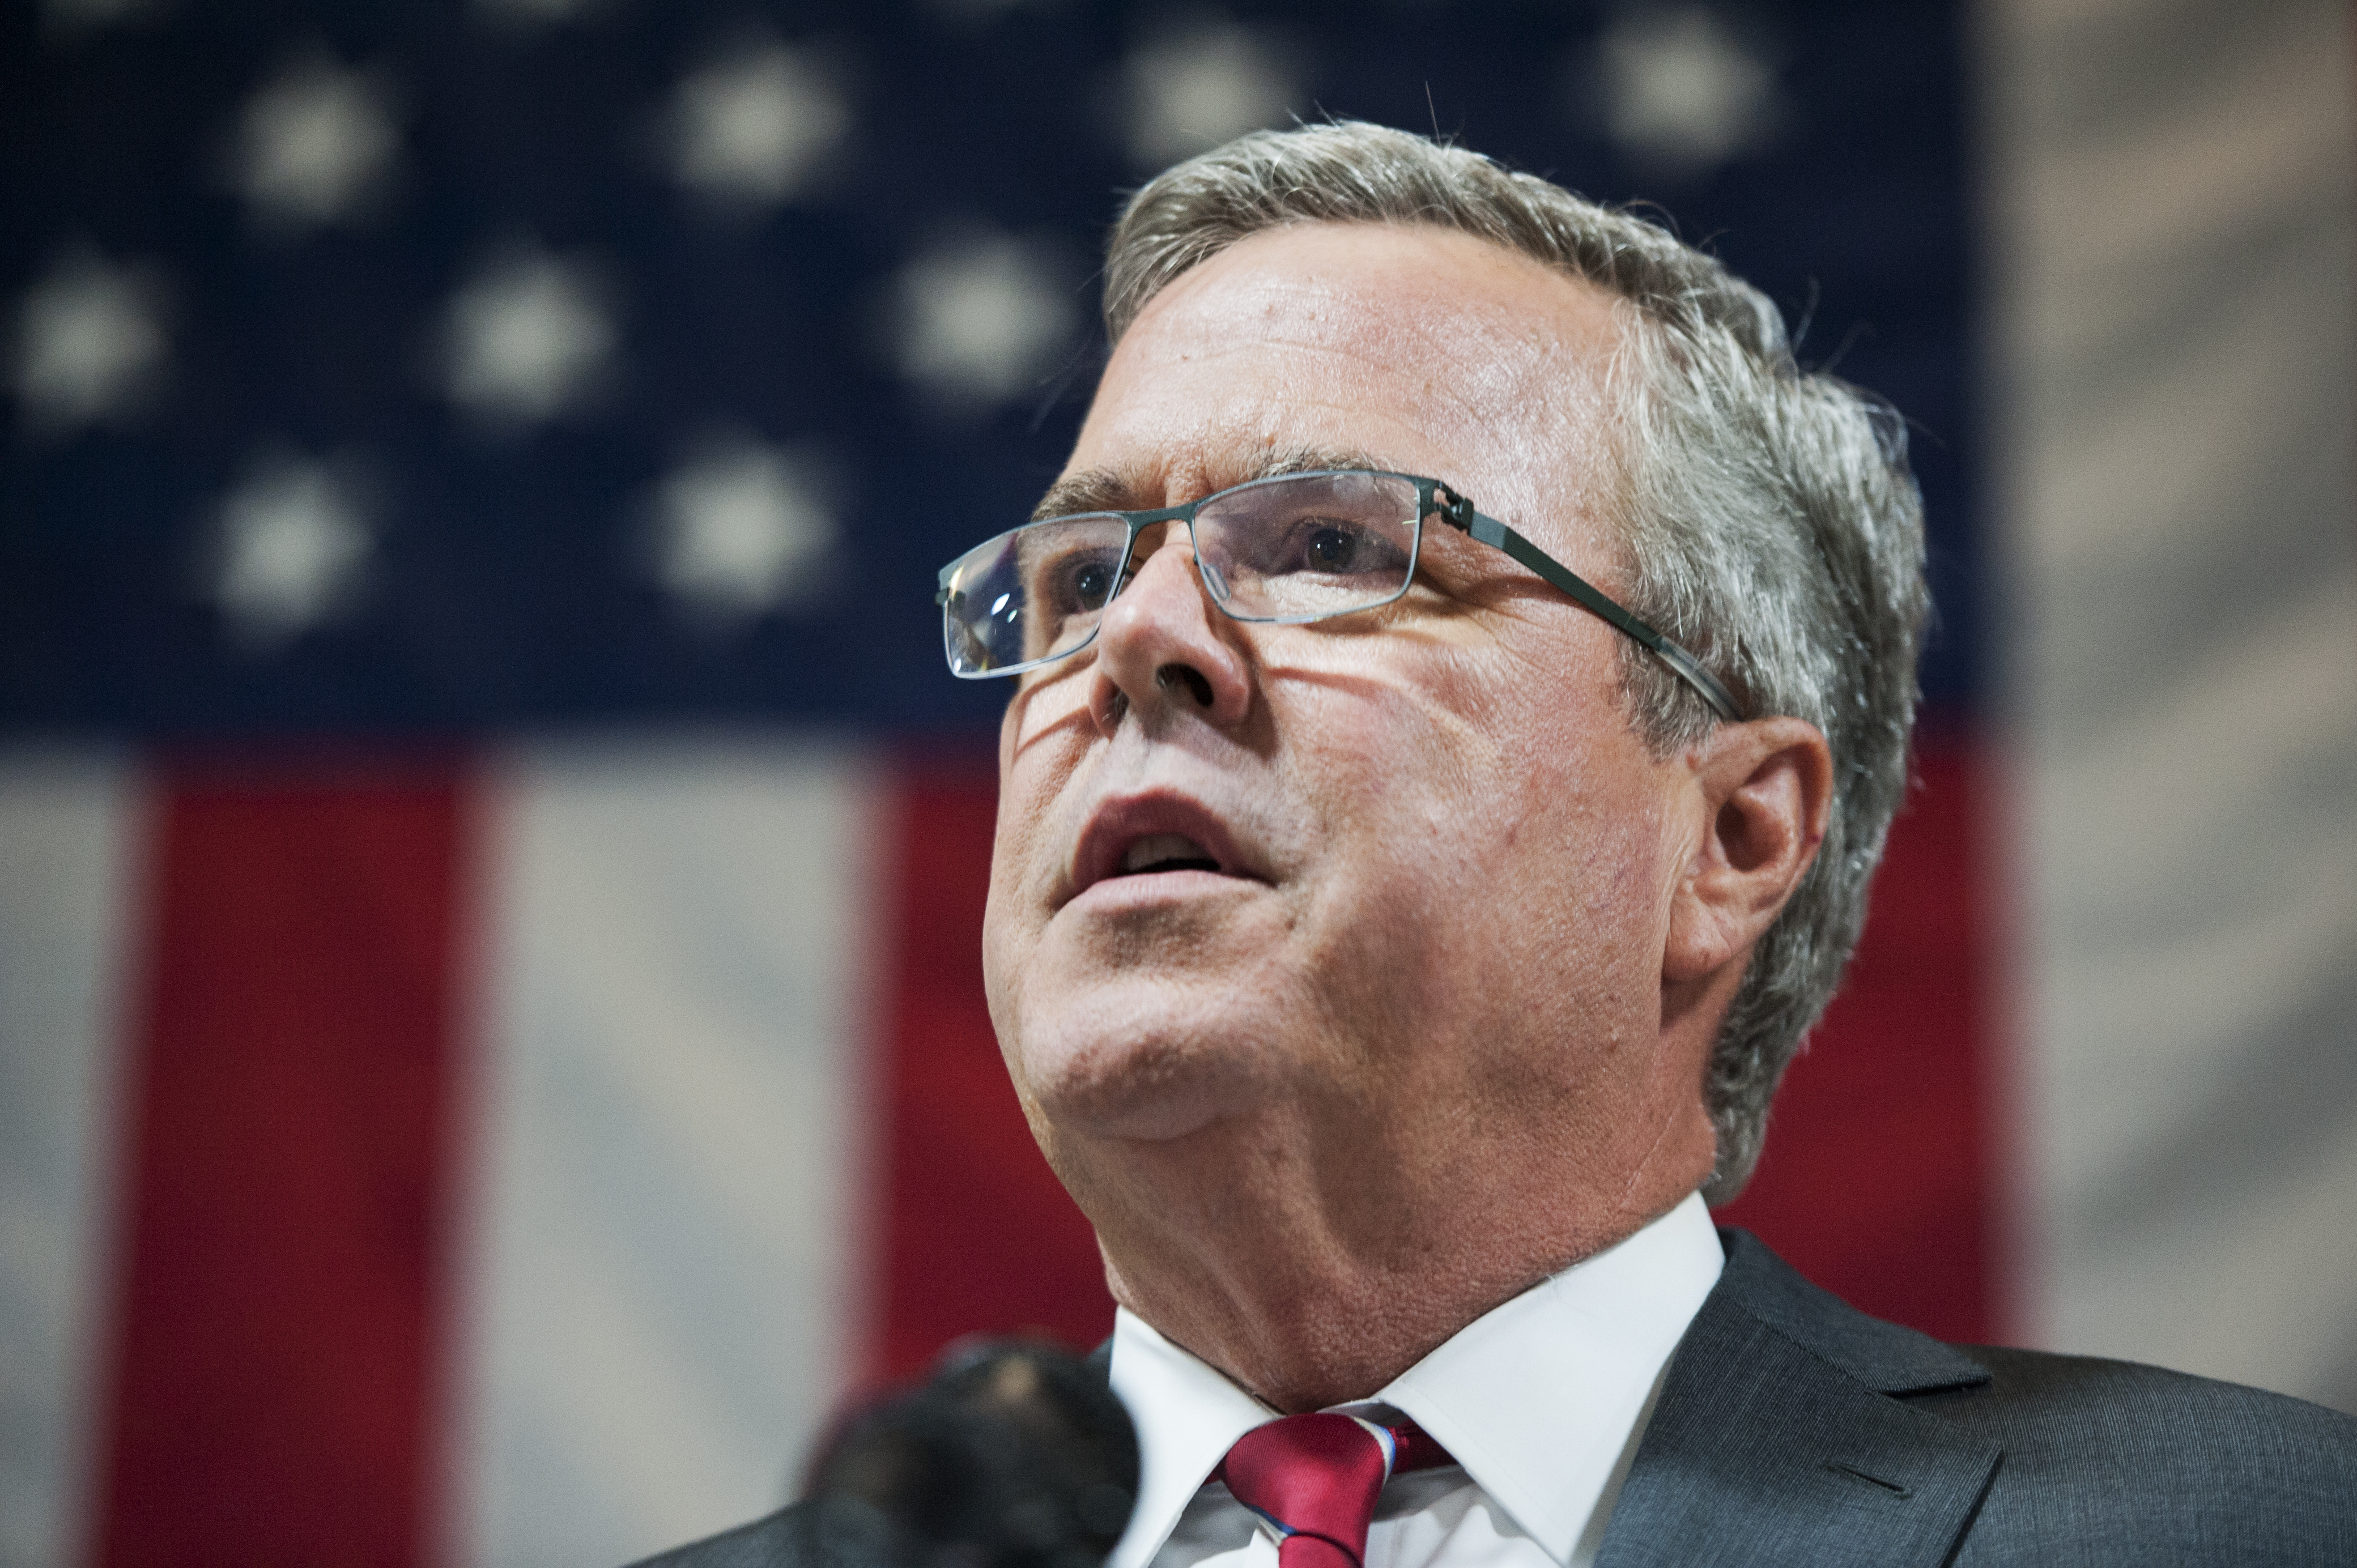 Former Florida Gov. Jeb Bush, speaks at an event at Illuminating Technologies Inc., in Greensboro, N.C. on Sept. 24, 2014.